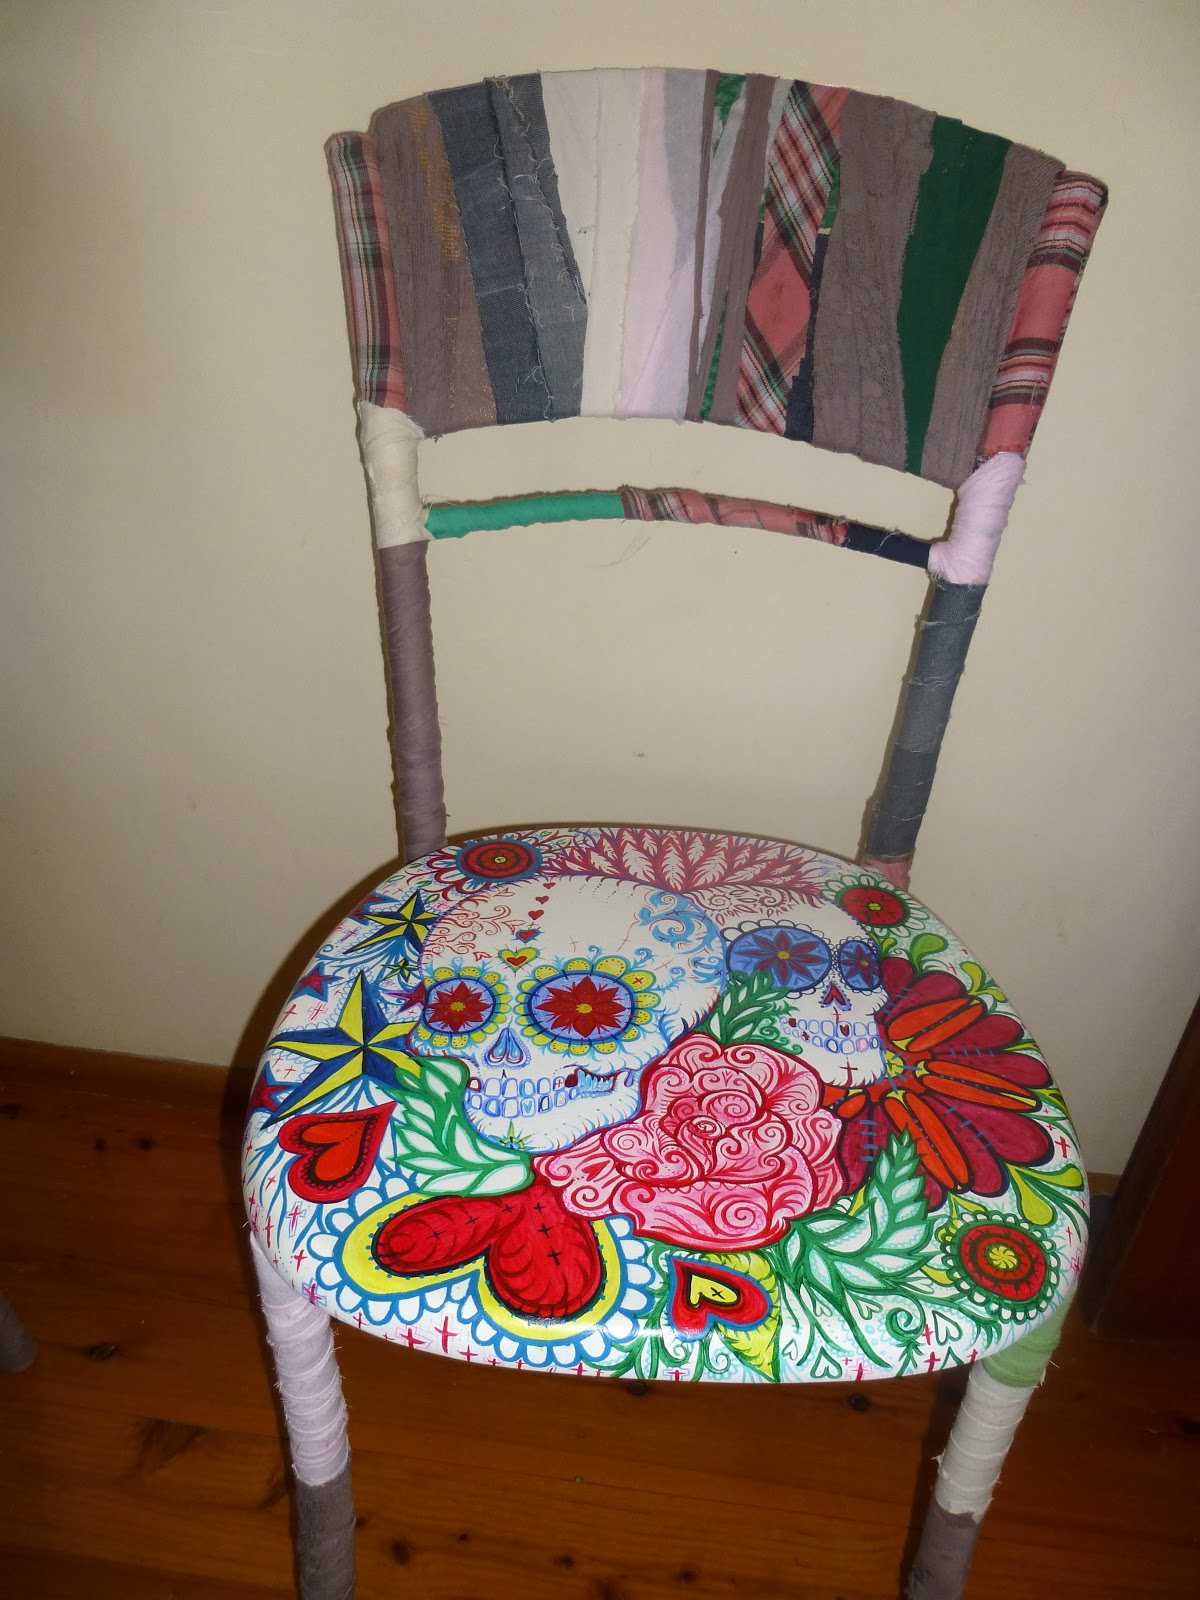 Tattoo Artist Chair Outdoor Chaise Lounge Chairs Illustrator Of All Thing Magical And Creative